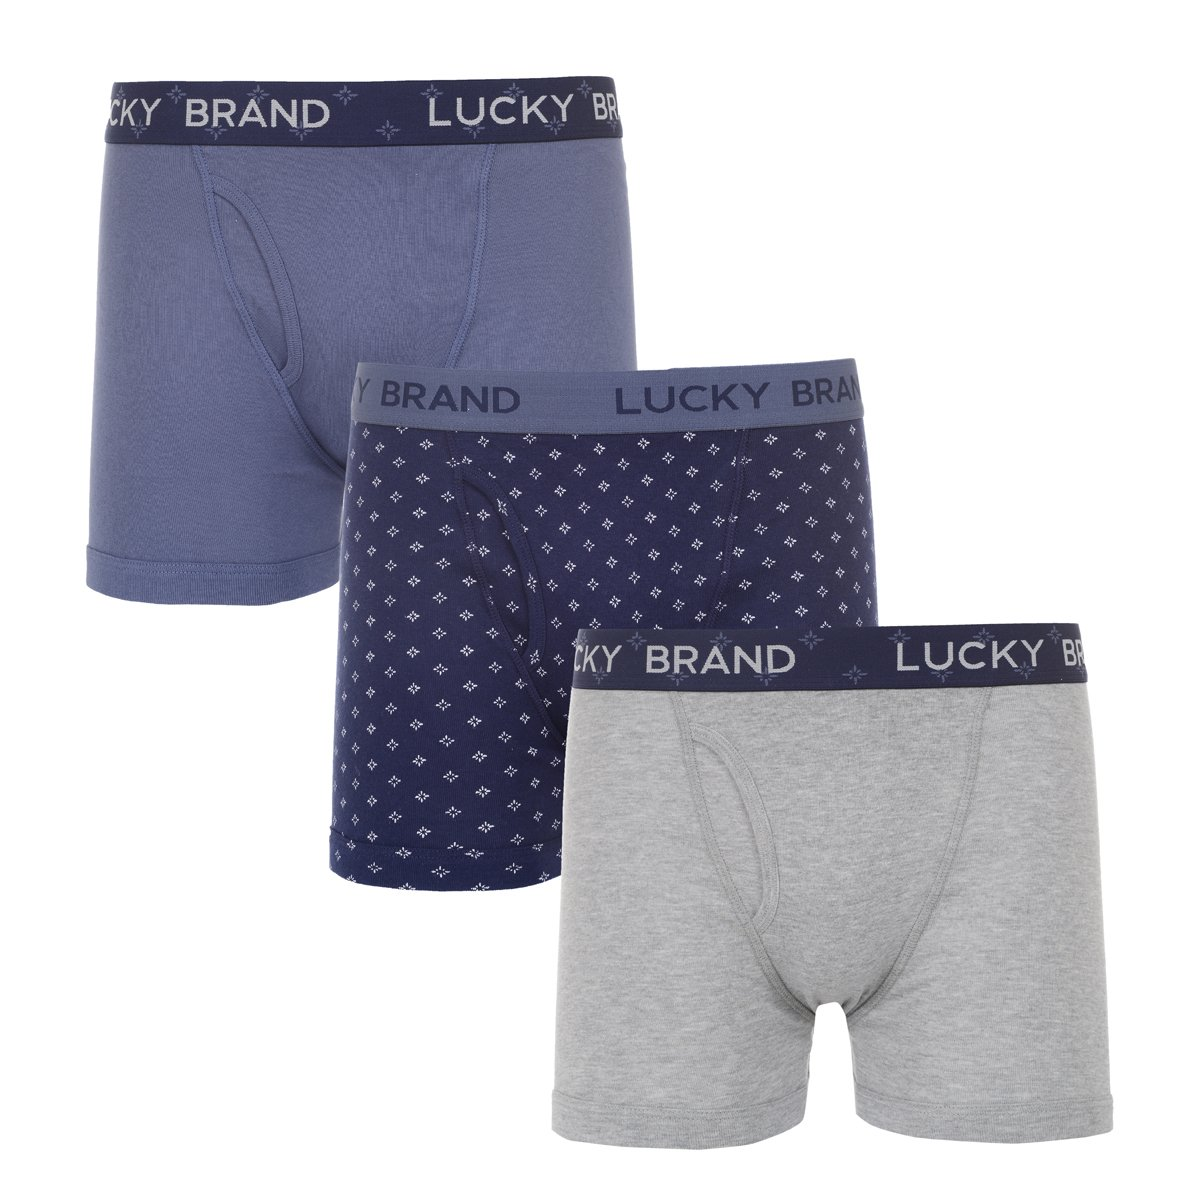 Lucky Brand Mens 3 Pack Cotton Boxer Briefs Vintage Indigo/Peacoat Print/Heather Grey M